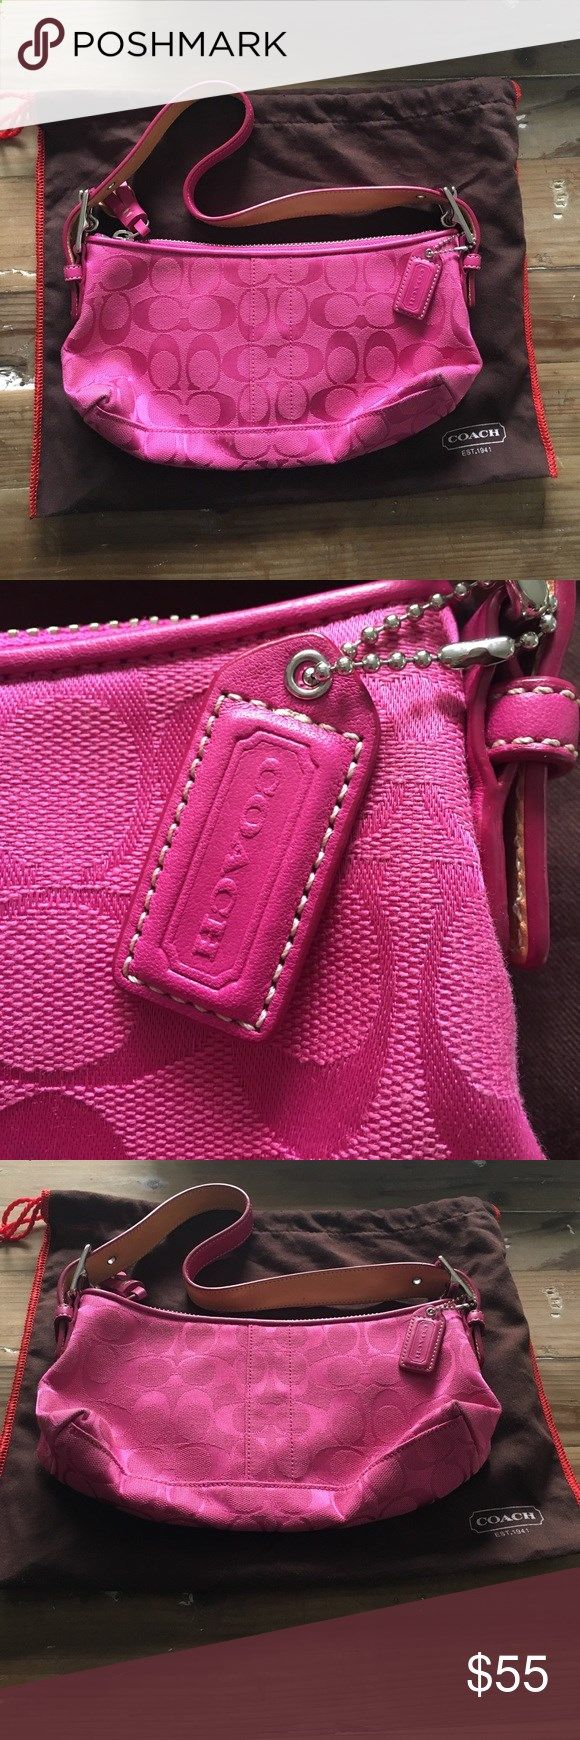 Pink Coach Purse Super chic and hardly worn! The perfect pop with any outfit! Coach Bags Shoulder Bags